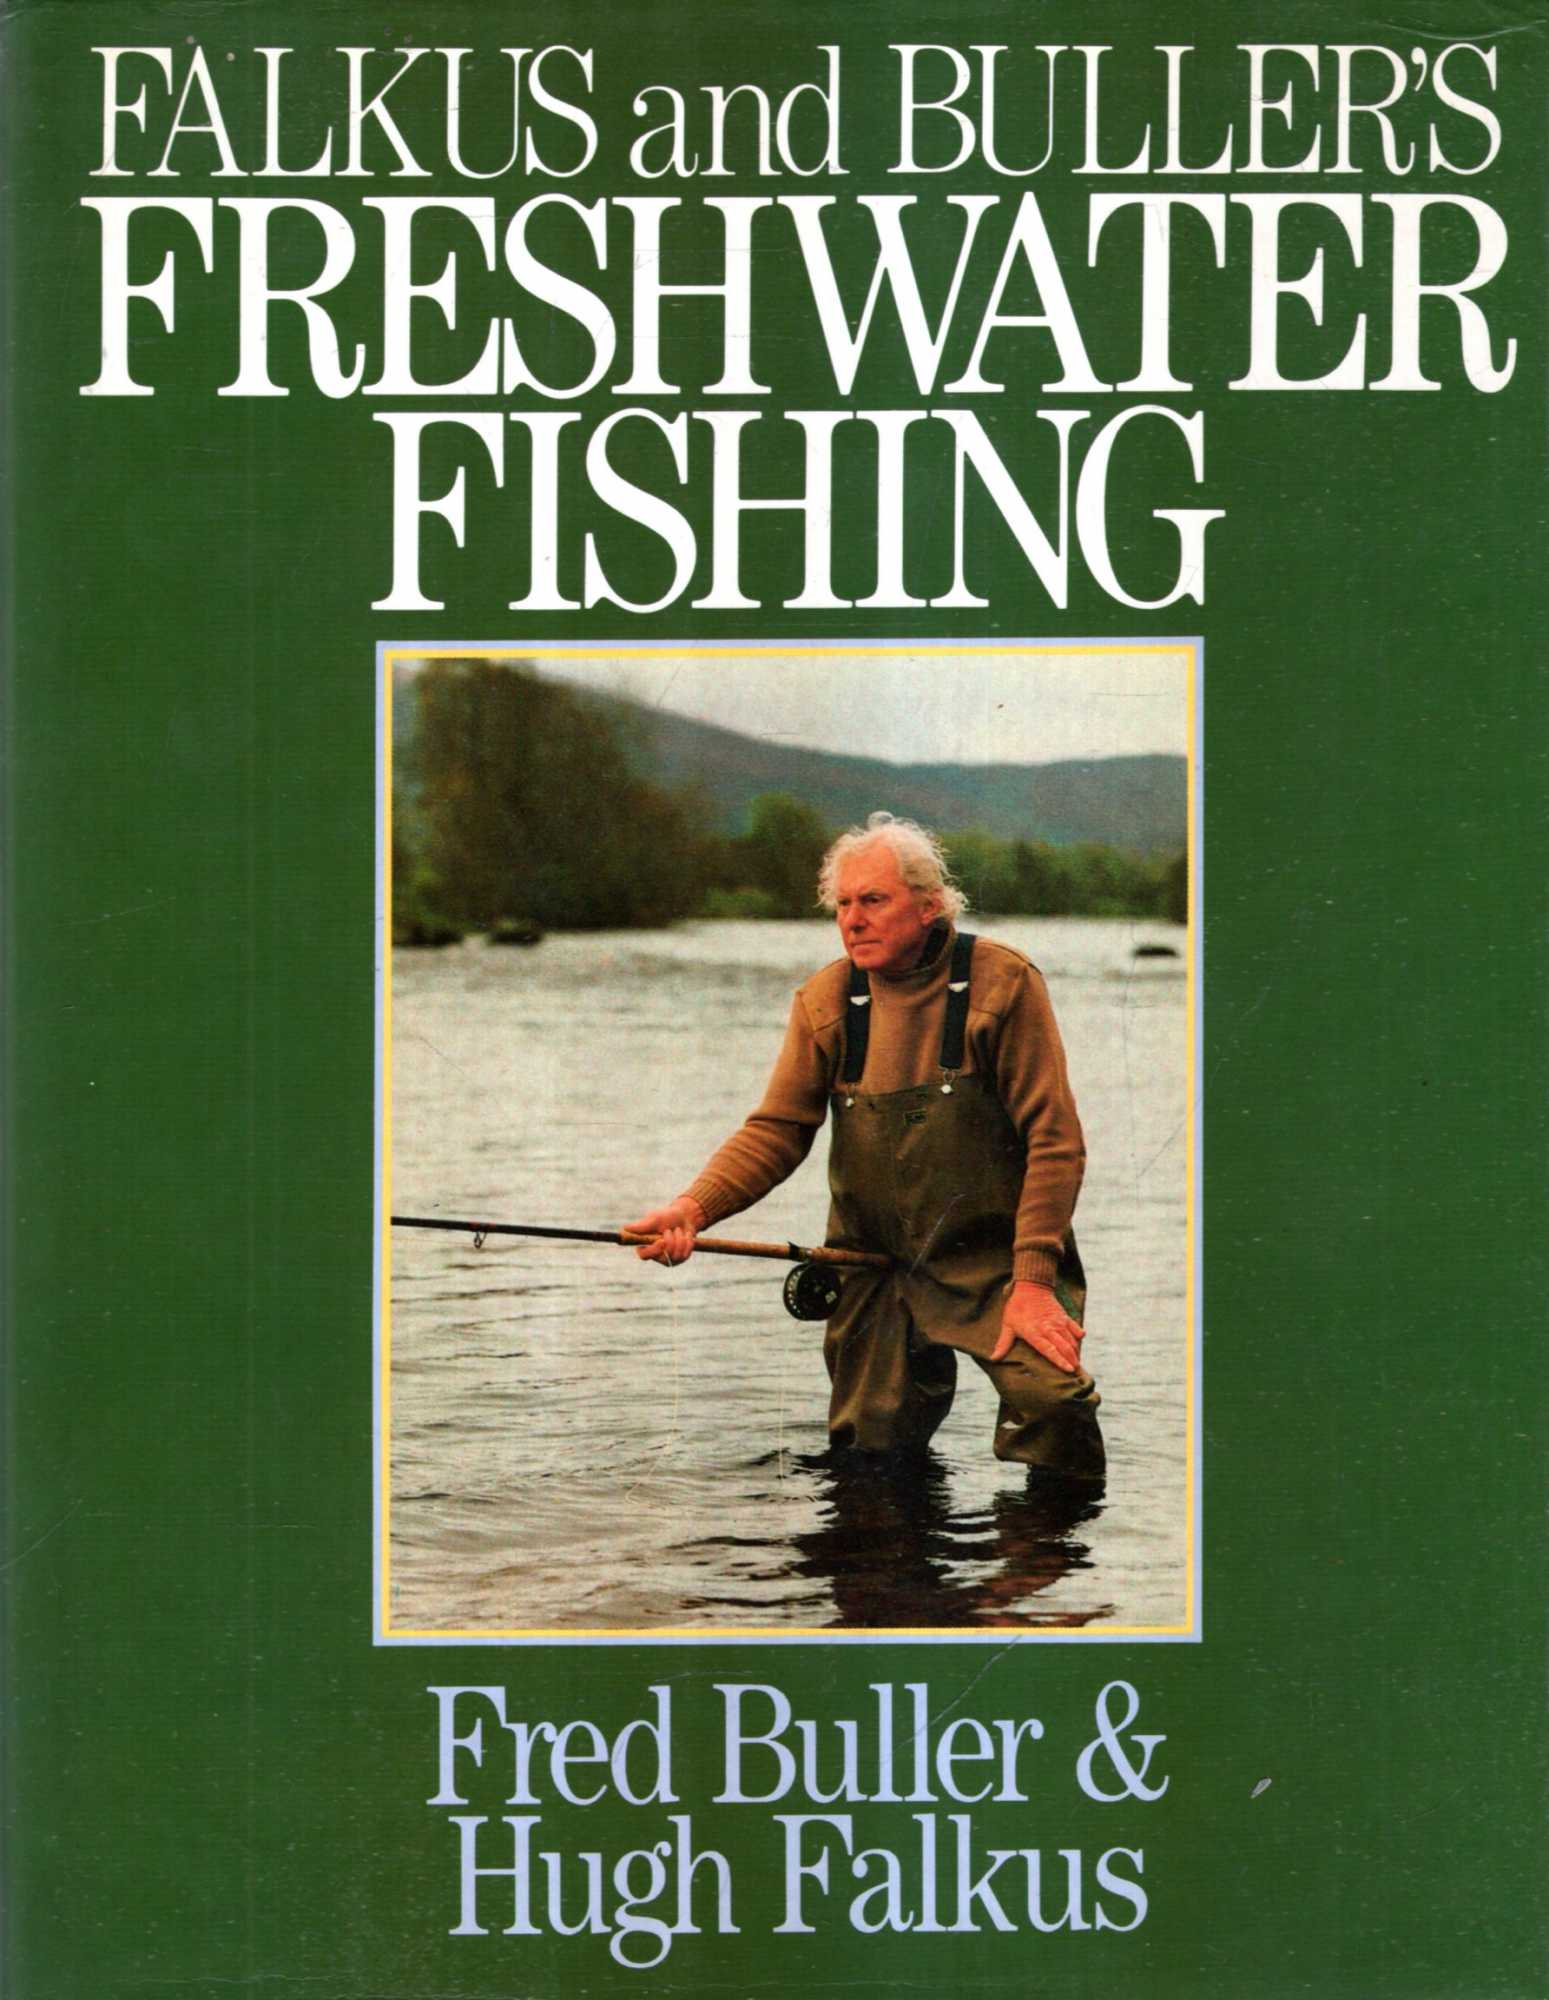 Image for Falkus and Buller's Freshwater Fishing : A Book of Tackles and Techniques with Some Notes on Various Fish, Fish Recipes, Fishing Safety and Sundry Other Matters